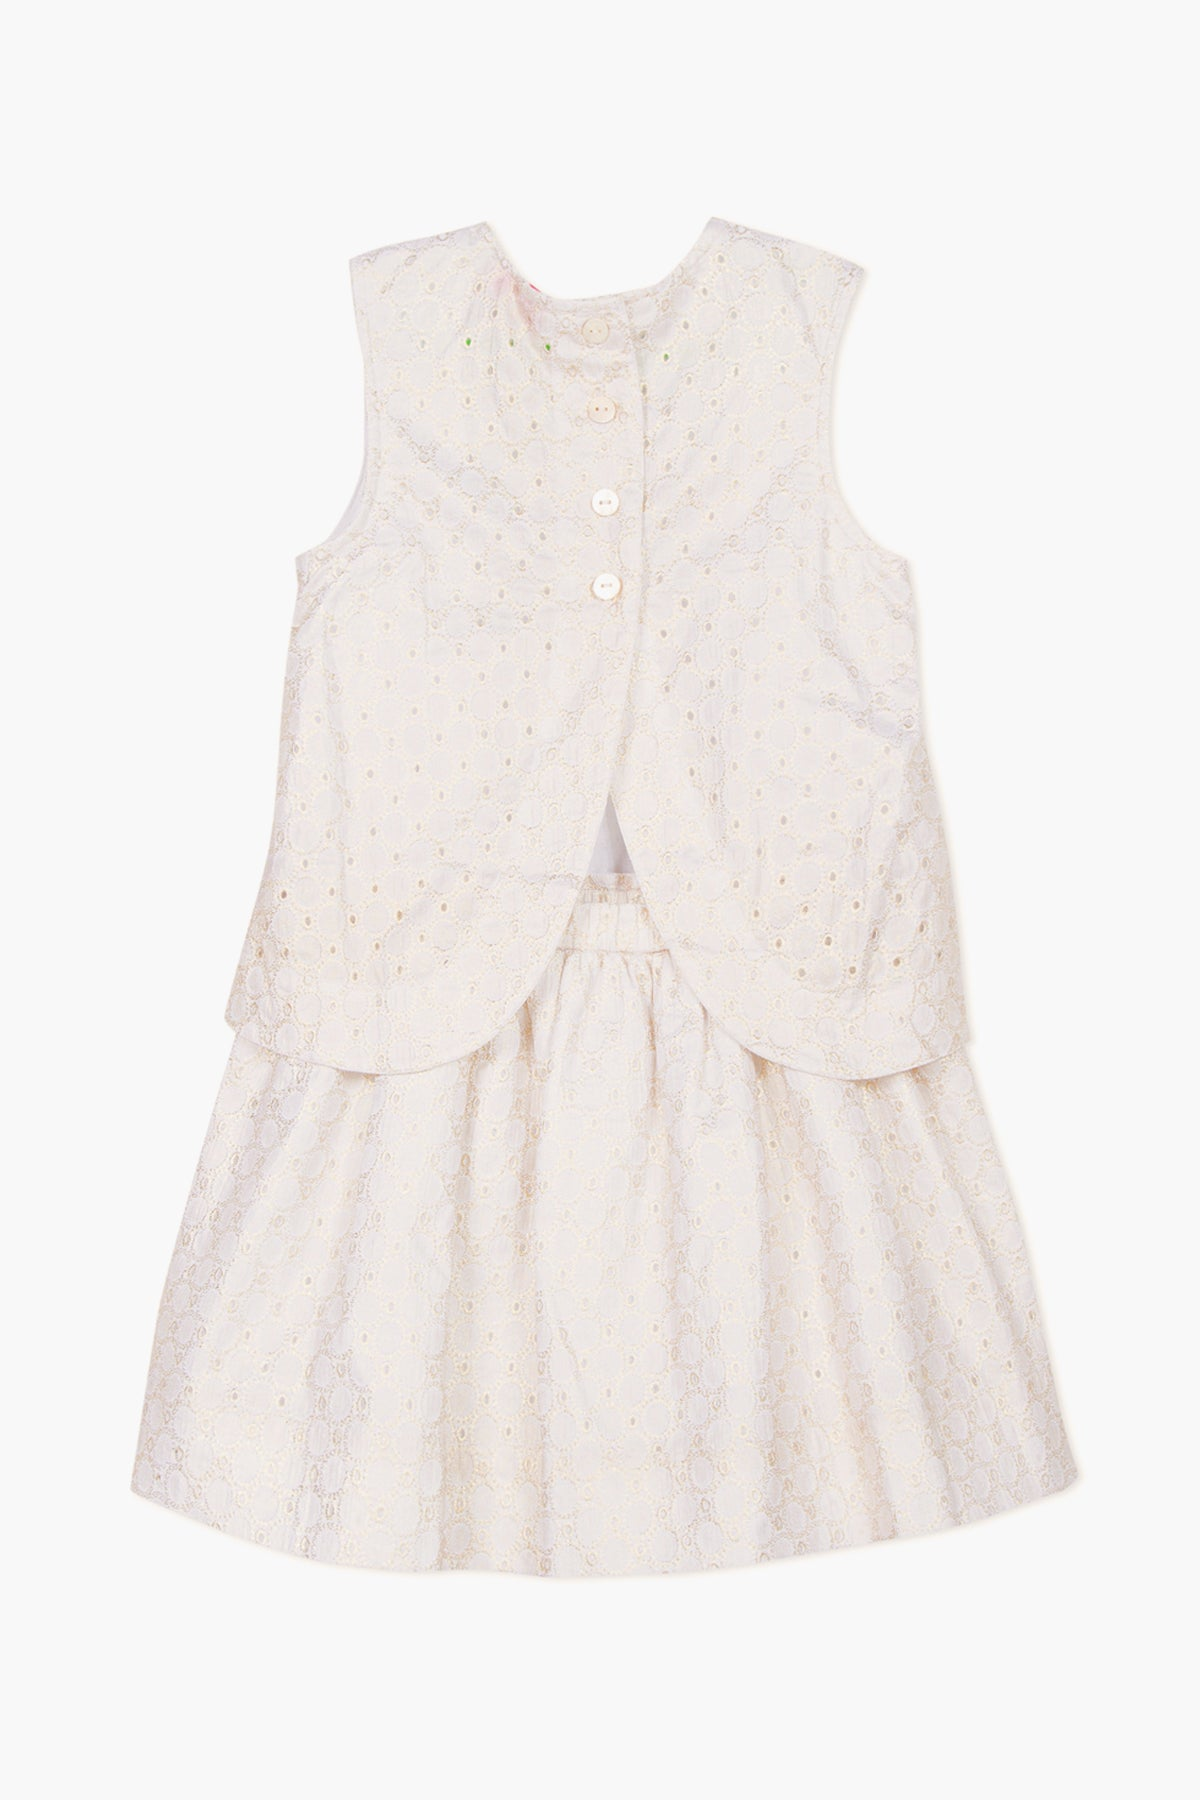 Lili Gaufrette Layered Gold Eyelet Girls Dress